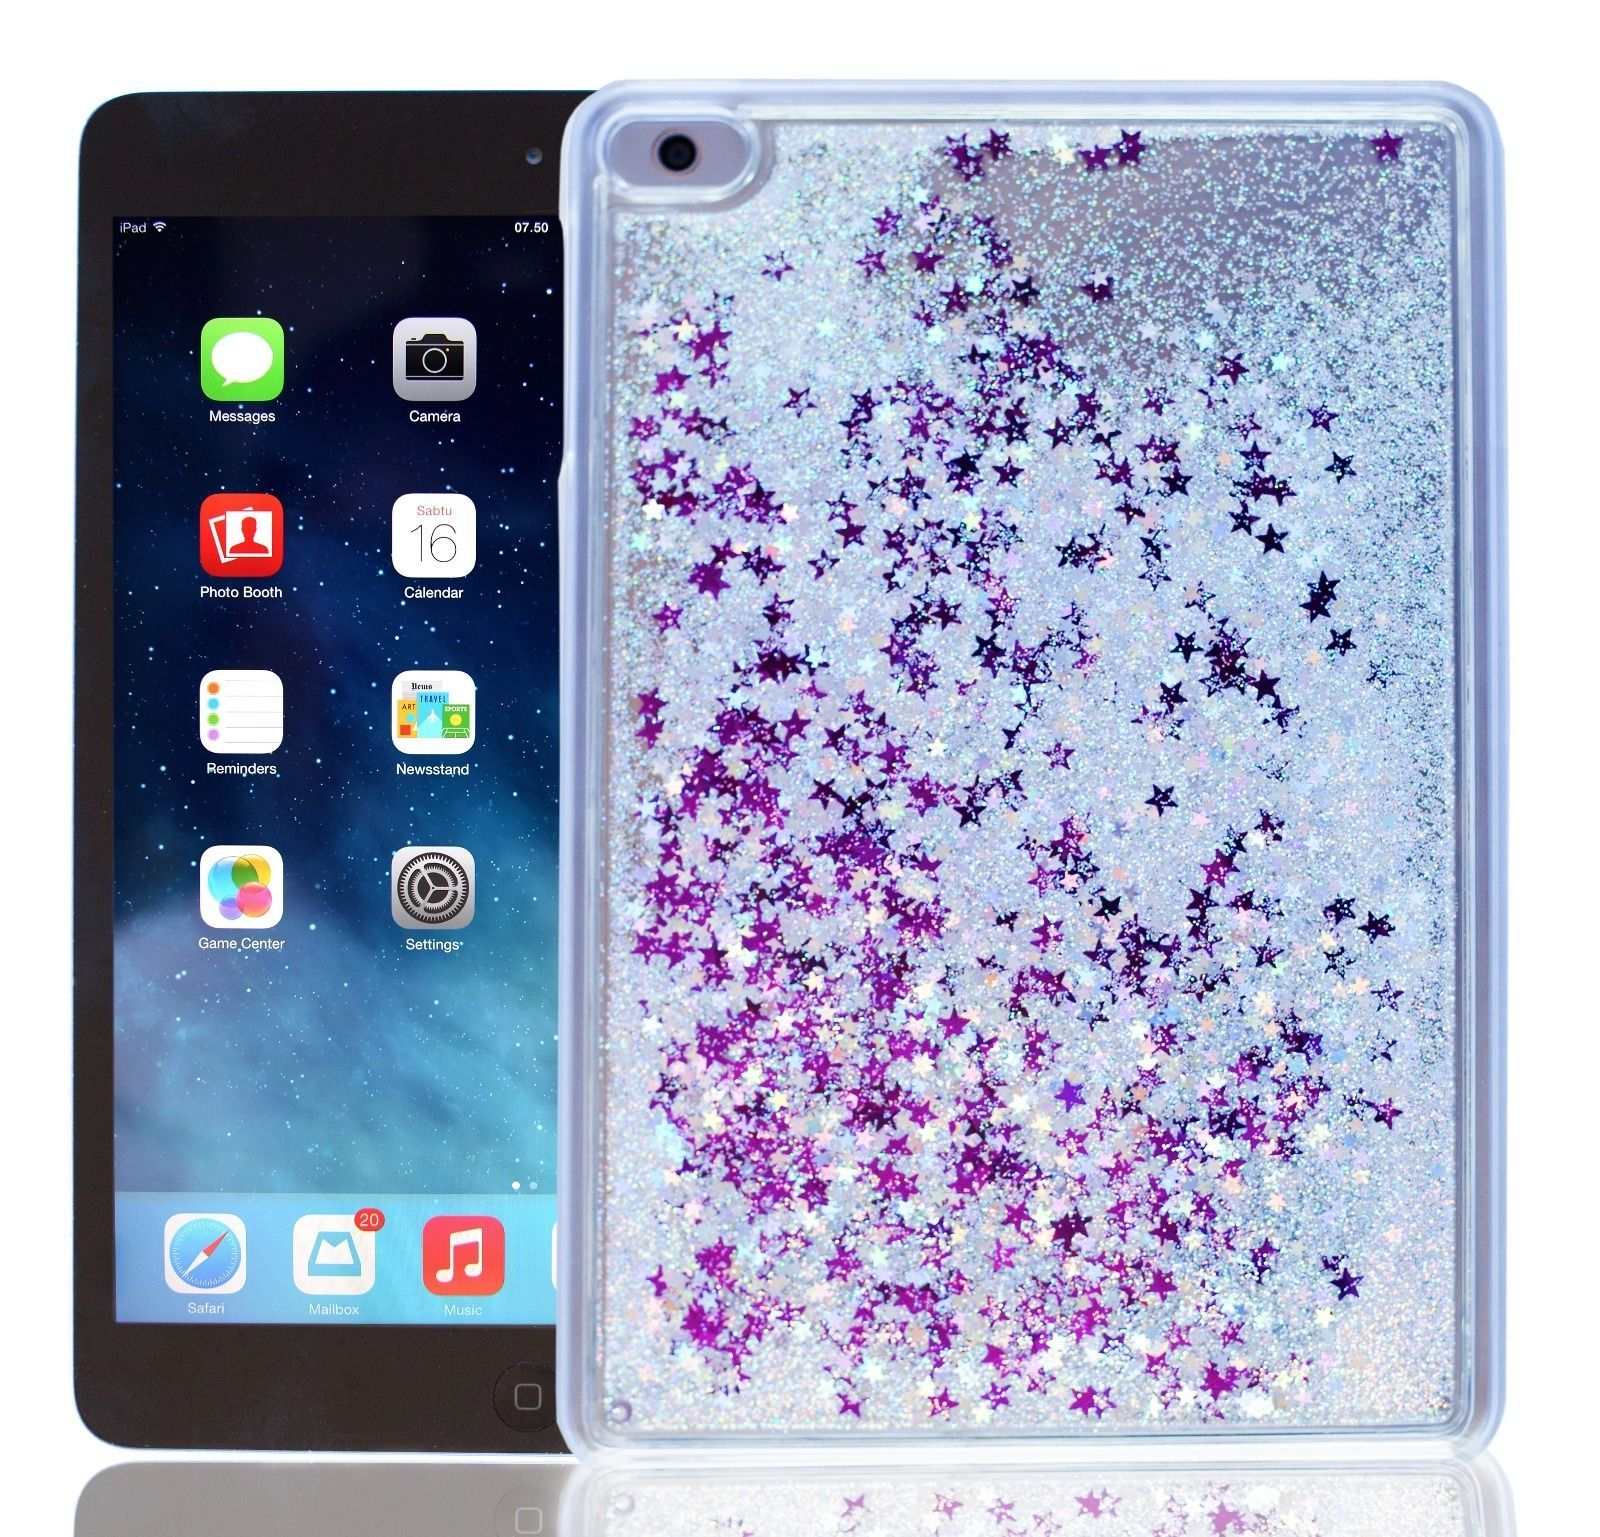 Get your eye bling-blinged with this dazzling LIMITED EDITION liquid  glitter iPad Mini case. You cannot find this unique iPad Mini case anywhere  else!